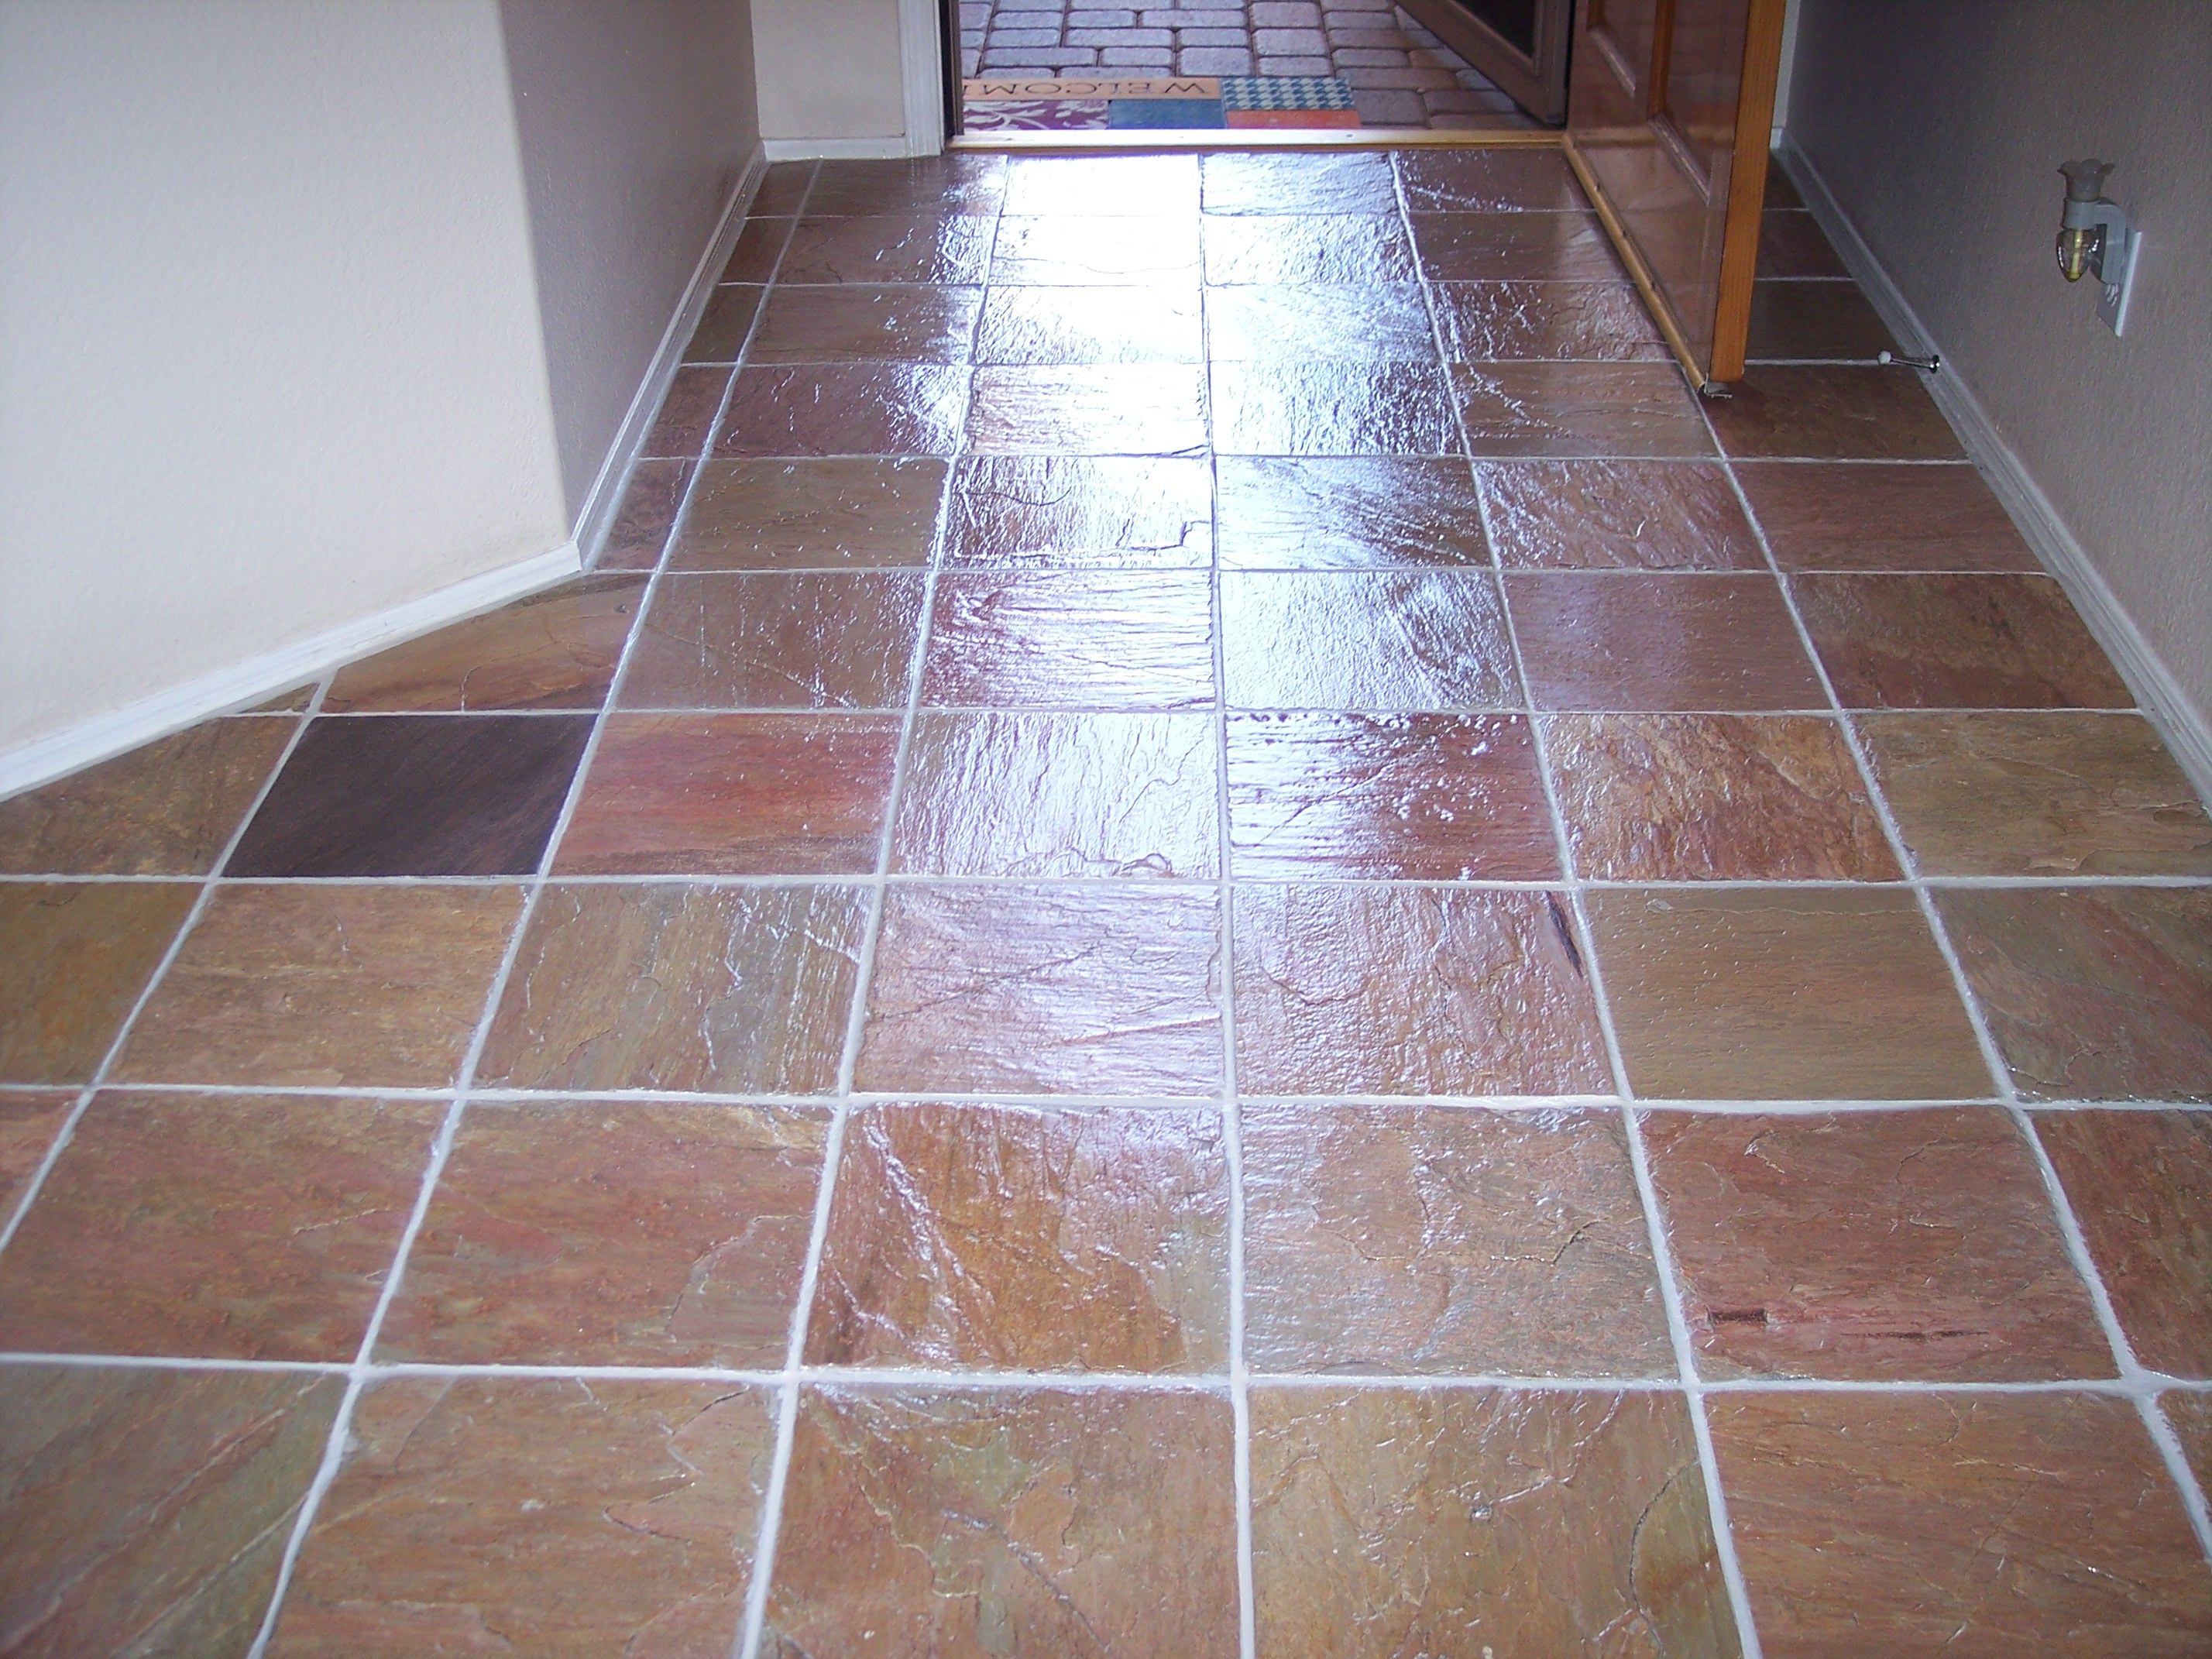 Do The Floors In Your Restrooms Need Tile And Grout Cleaning Service Read More